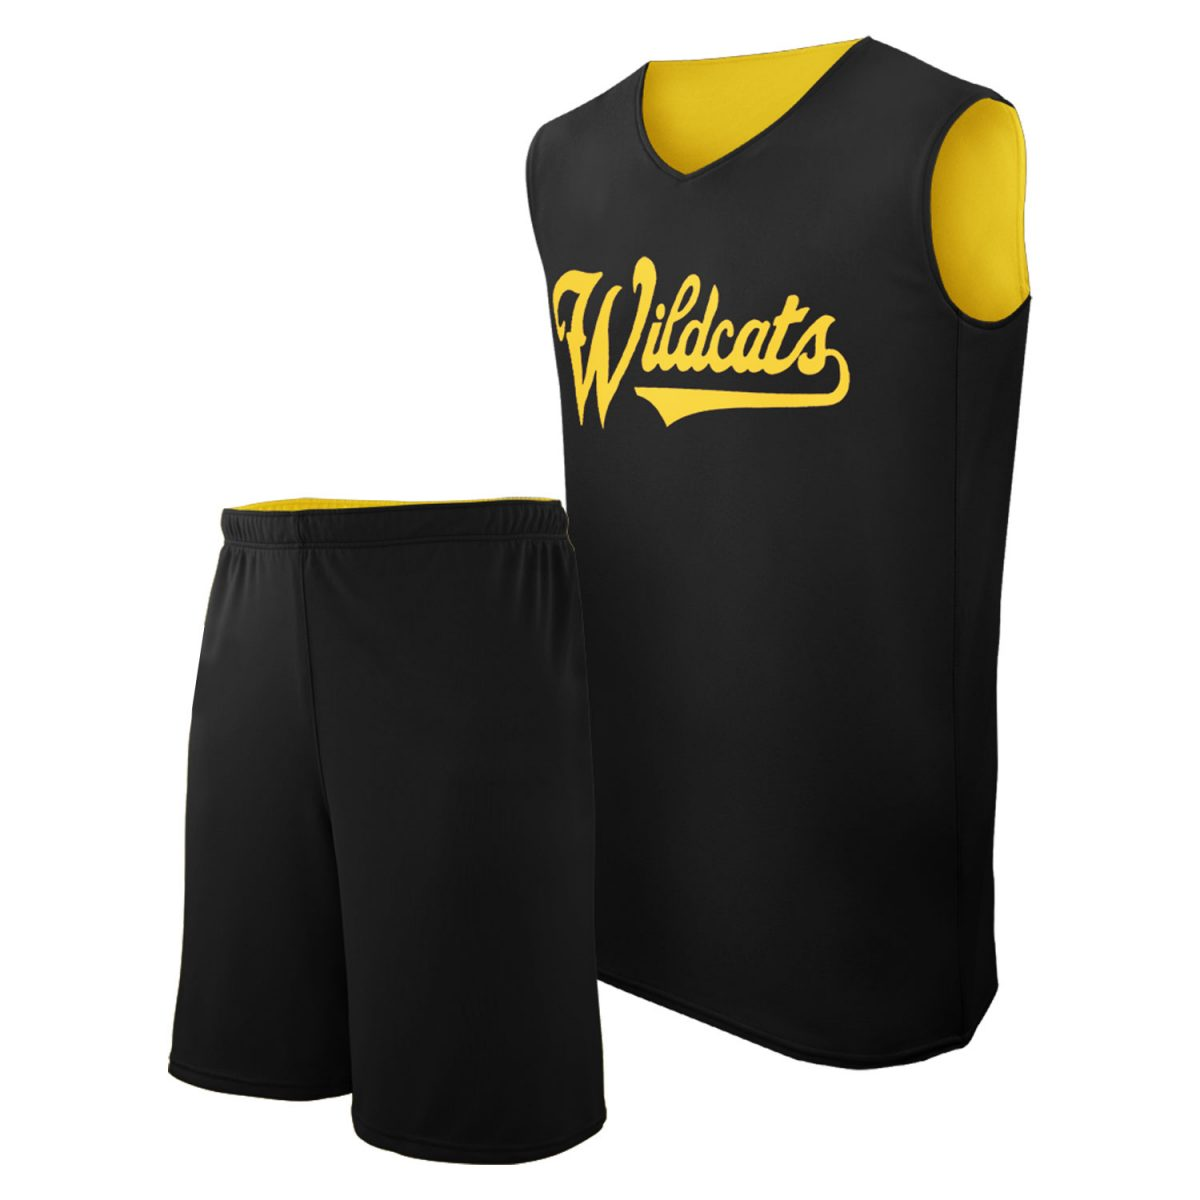 Boys Basketball Uniforms Manufacturers in Durgapur